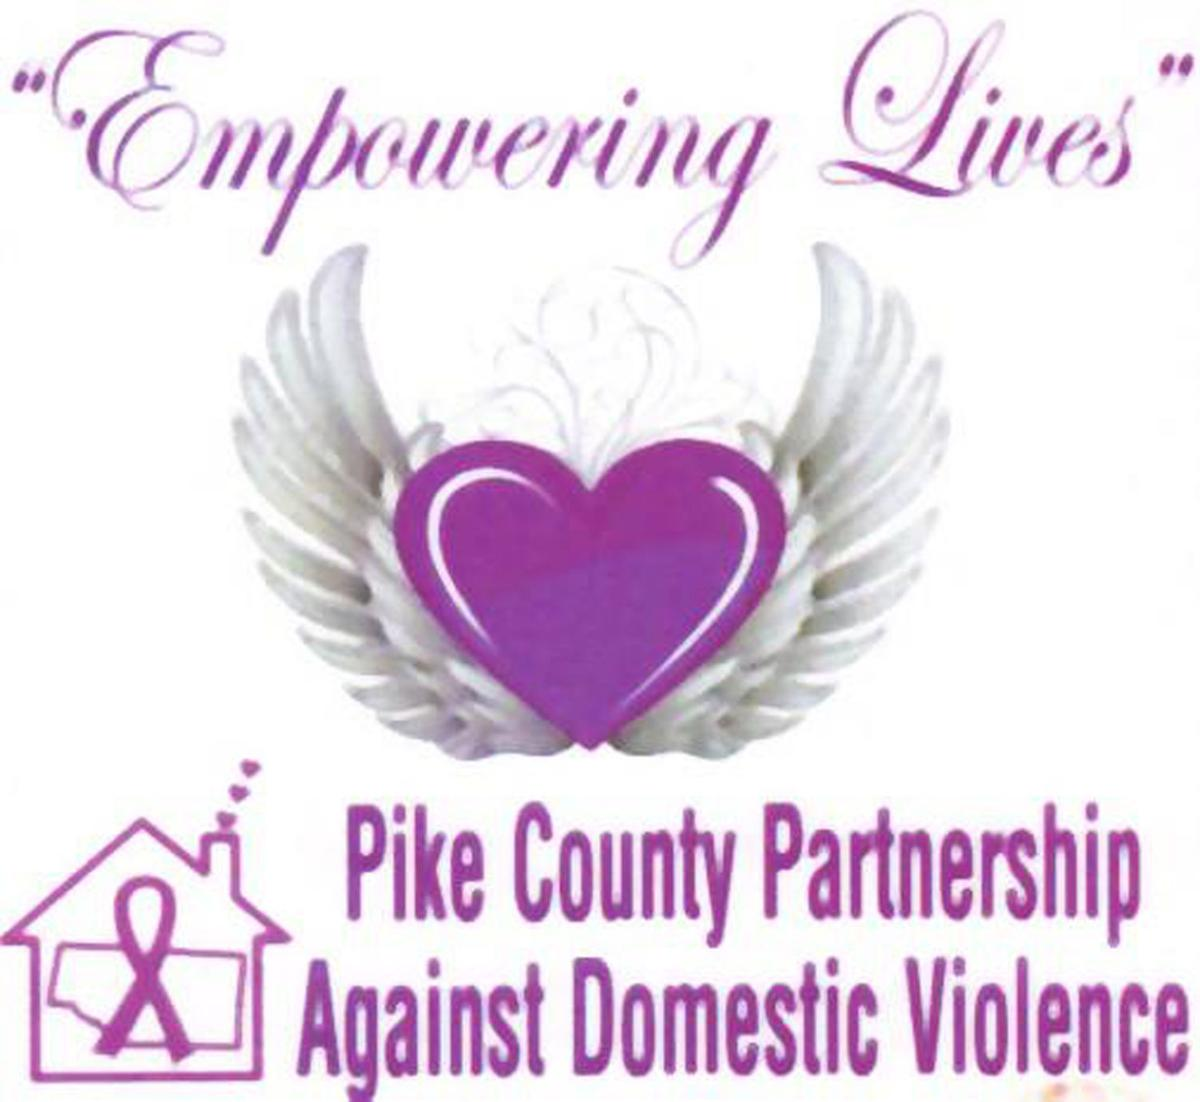 Anonymous online support group offered by Pike County Partnership Against Domestic Violence